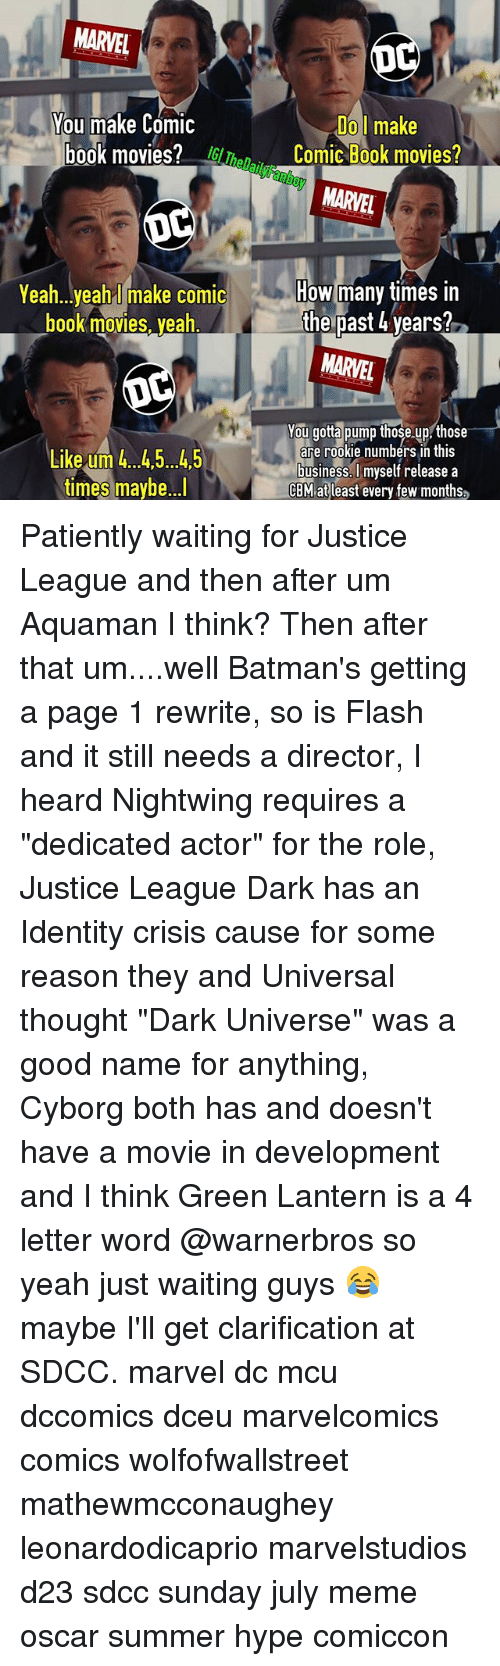 """How Many Times, Hype, and Meme: MARVEL  Do l make  Comic Book movies?  You make Comic  book movies?Th  MARVEL  Yea h...yeah make comic  book movies, yeah  How many times in  the past 4 years?  MARVEL  You gotta pump those up those  are rookie numbers in this  business.lmyself release a  CBM at least every few months  gtoe up  Like um 4.45...45  times maybe...l Patiently waiting for Justice League and then after um Aquaman I think? Then after that um....well Batman's getting a page 1 rewrite, so is Flash and it still needs a director, I heard Nightwing requires a """"dedicated actor"""" for the role, Justice League Dark has an Identity crisis cause for some reason they and Universal thought """"Dark Universe"""" was a good name for anything, Cyborg both has and doesn't have a movie in development and I think Green Lantern is a 4 letter word @warnerbros so yeah just waiting guys 😂 maybe I'll get clarification at SDCC. marvel dc mcu dccomics dceu marvelcomics comics wolfofwallstreet mathewmcconaughey leonardodicaprio marvelstudios d23 sdcc sunday july meme oscar summer hype comiccon"""